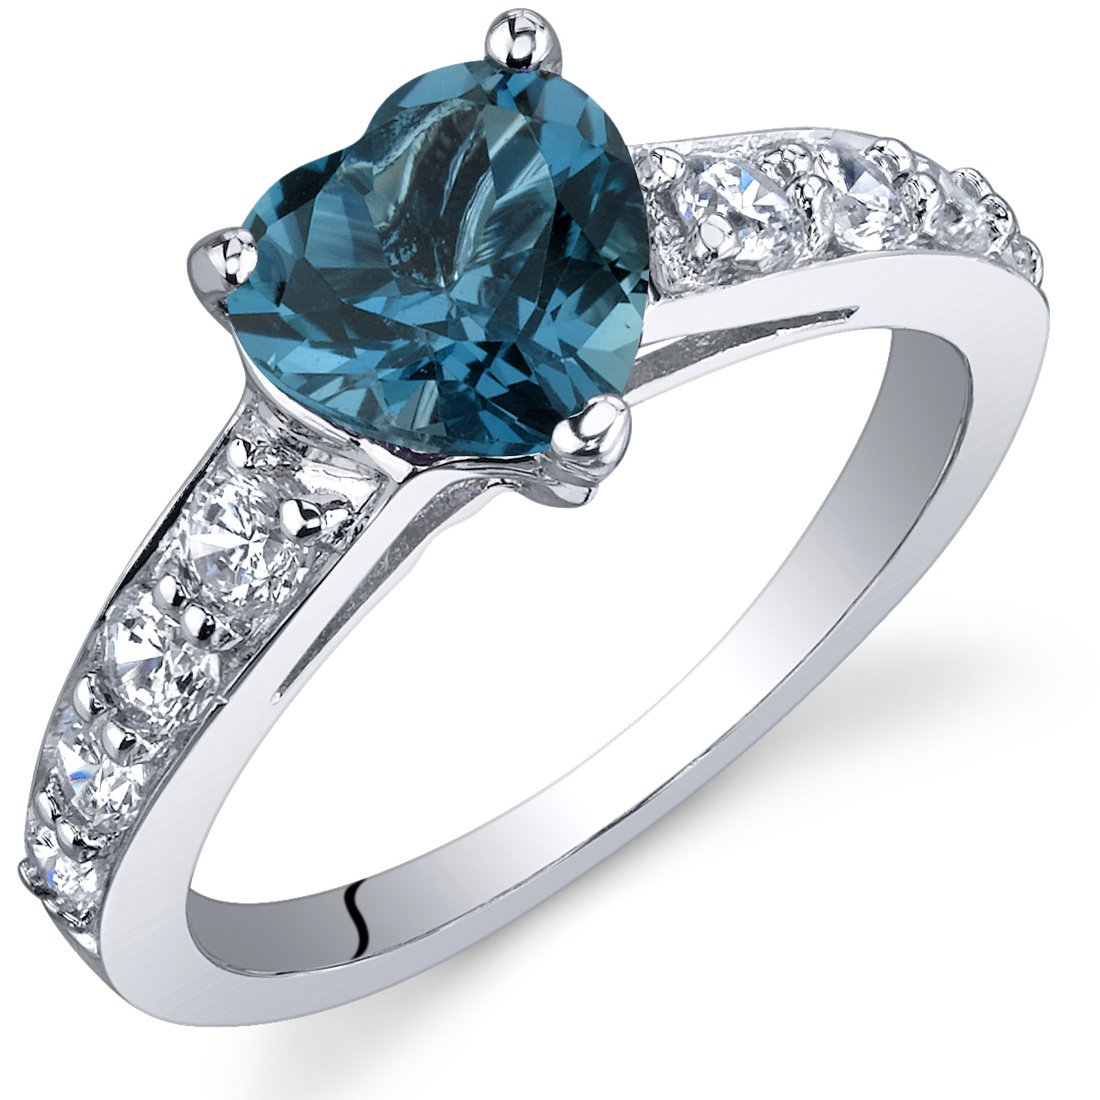 Dazzling Love 1.25 Carats London Blue Topaz Ring in Sterling Silver Rhodium Nickel Finish Sizes 5 to 9